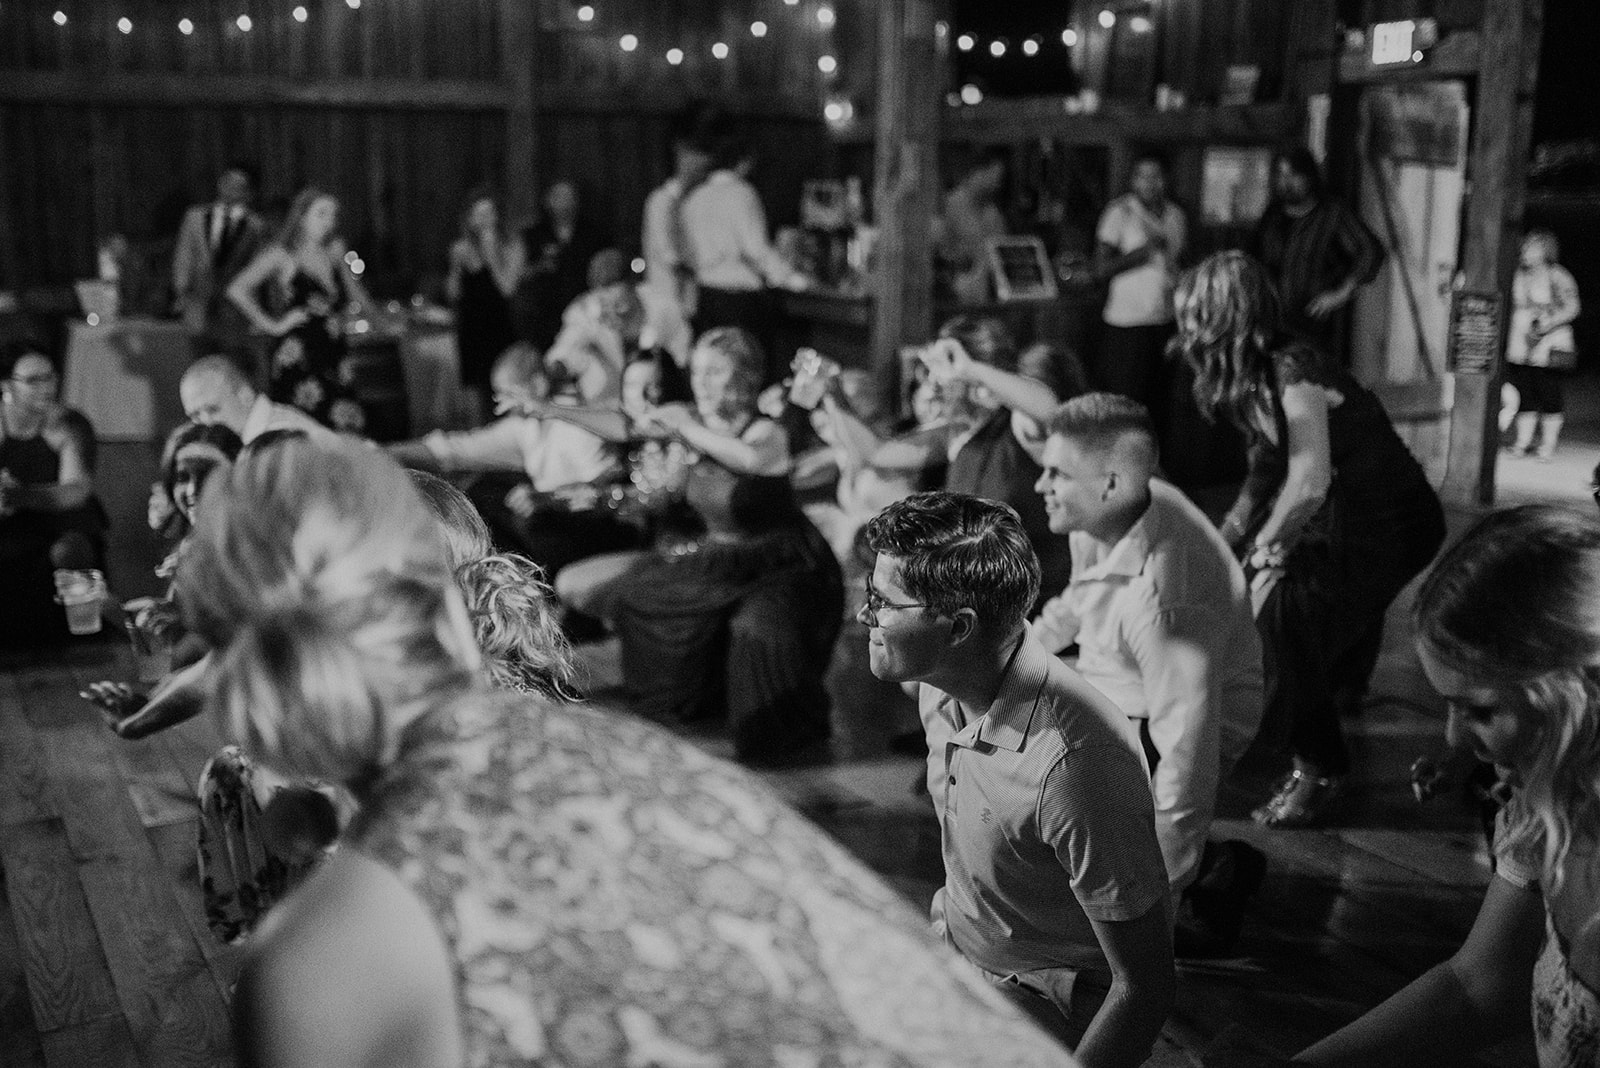 overthevineswisconsinwedding_1618.jpg